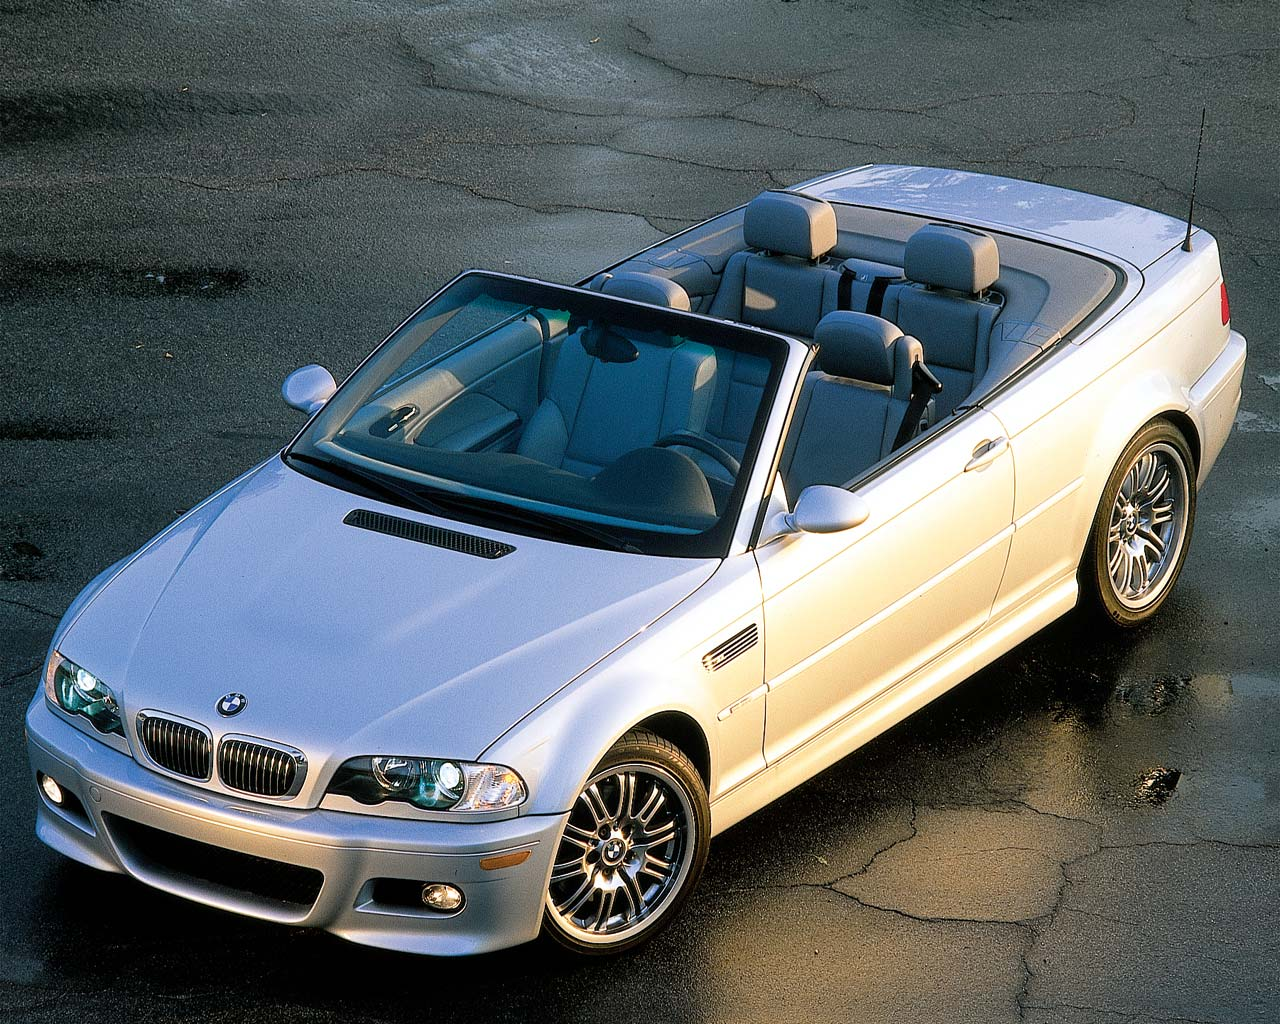 0207 01zoom 2001 Bmw M3 Convertible Front Overhead View Photo 1